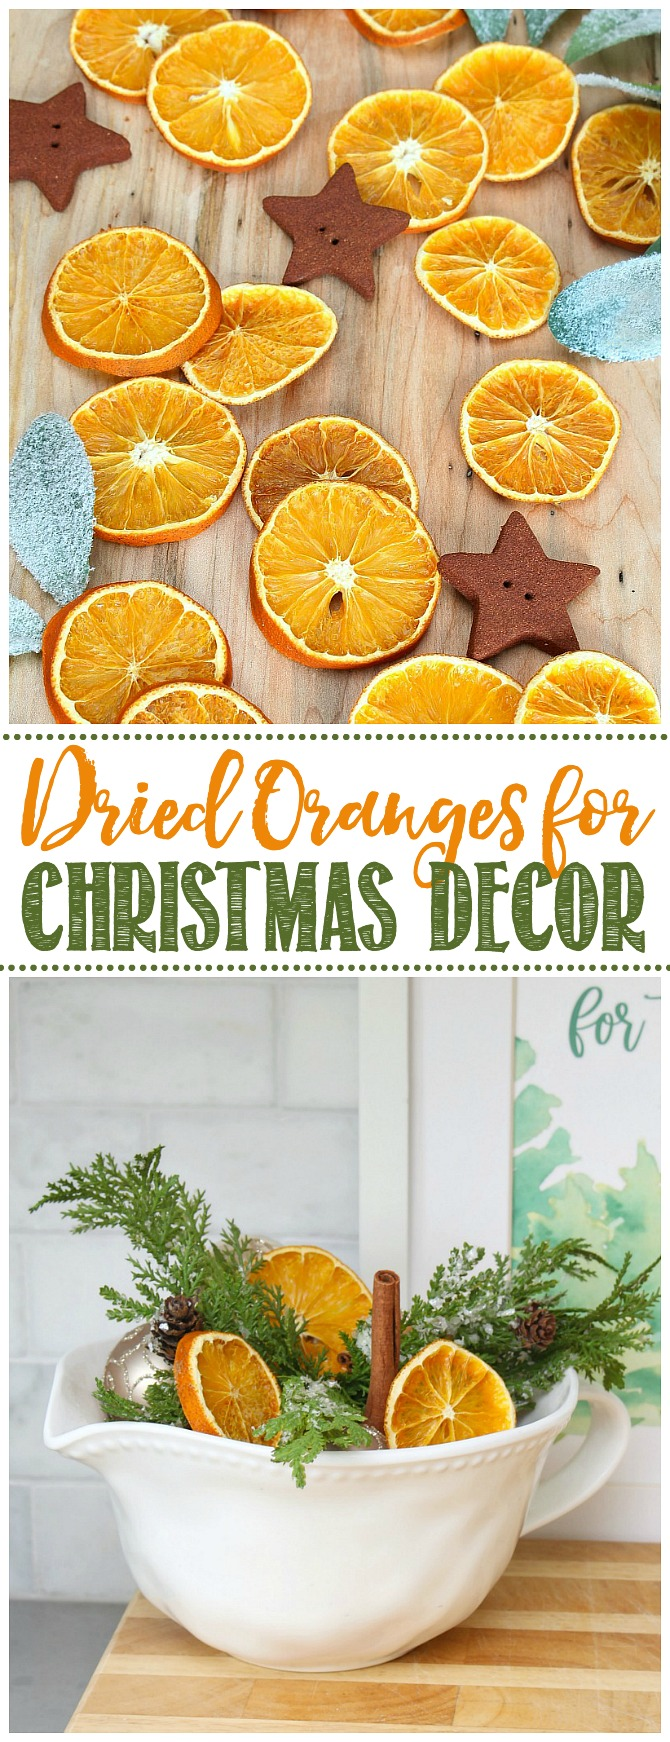 Dried orange slices for Christmas decor.